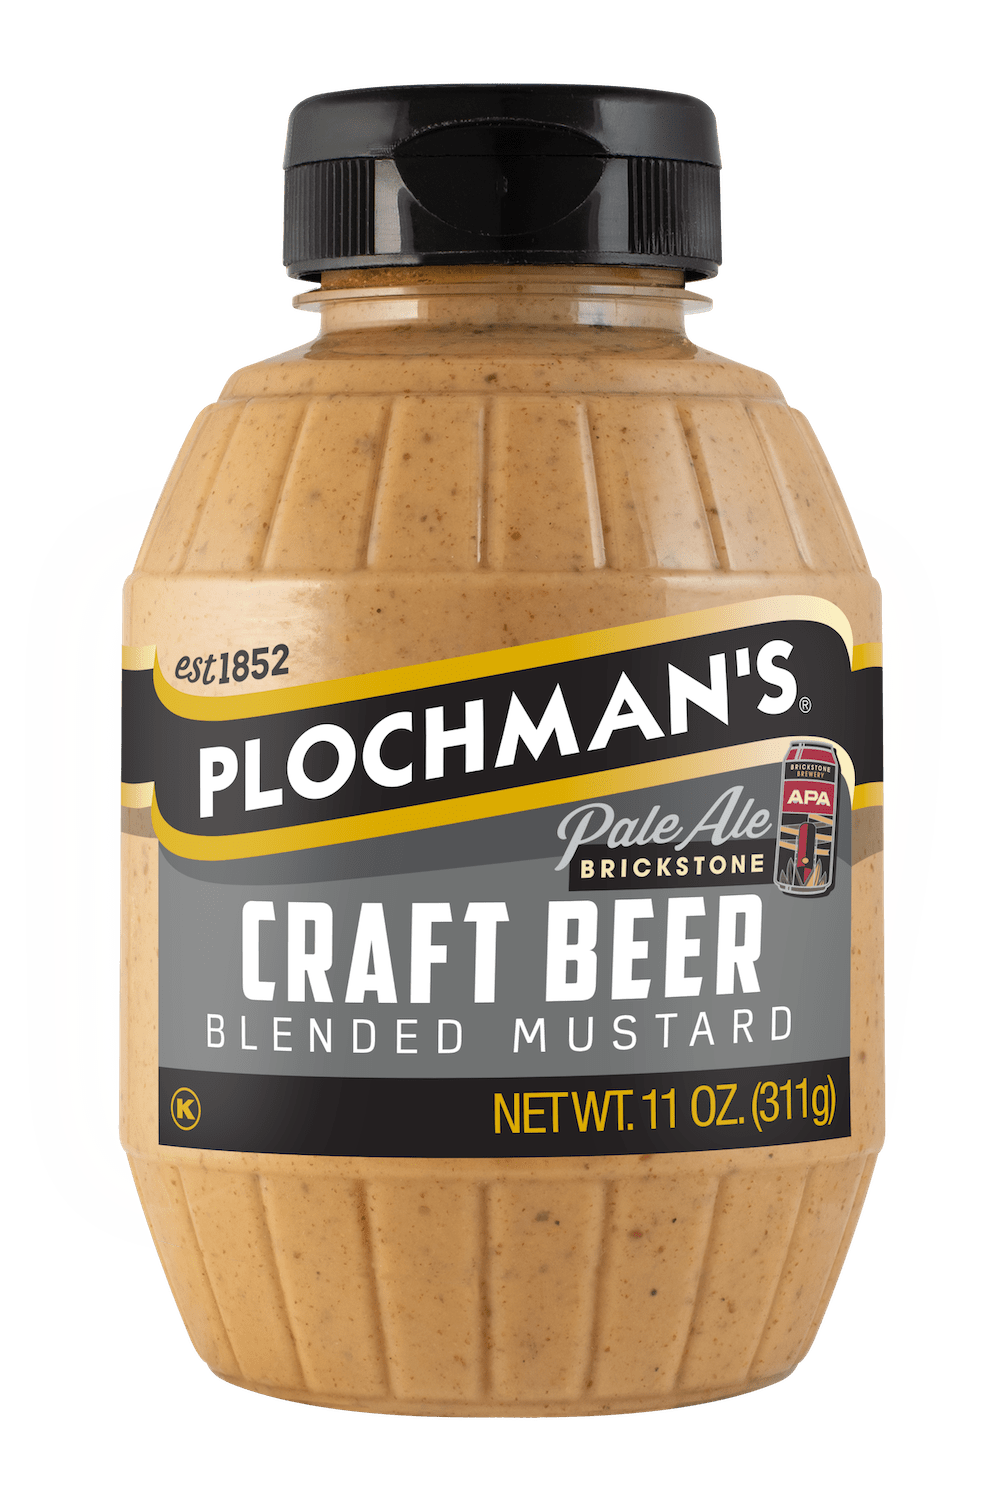 Plochman's Craft Beer Blended Mustard